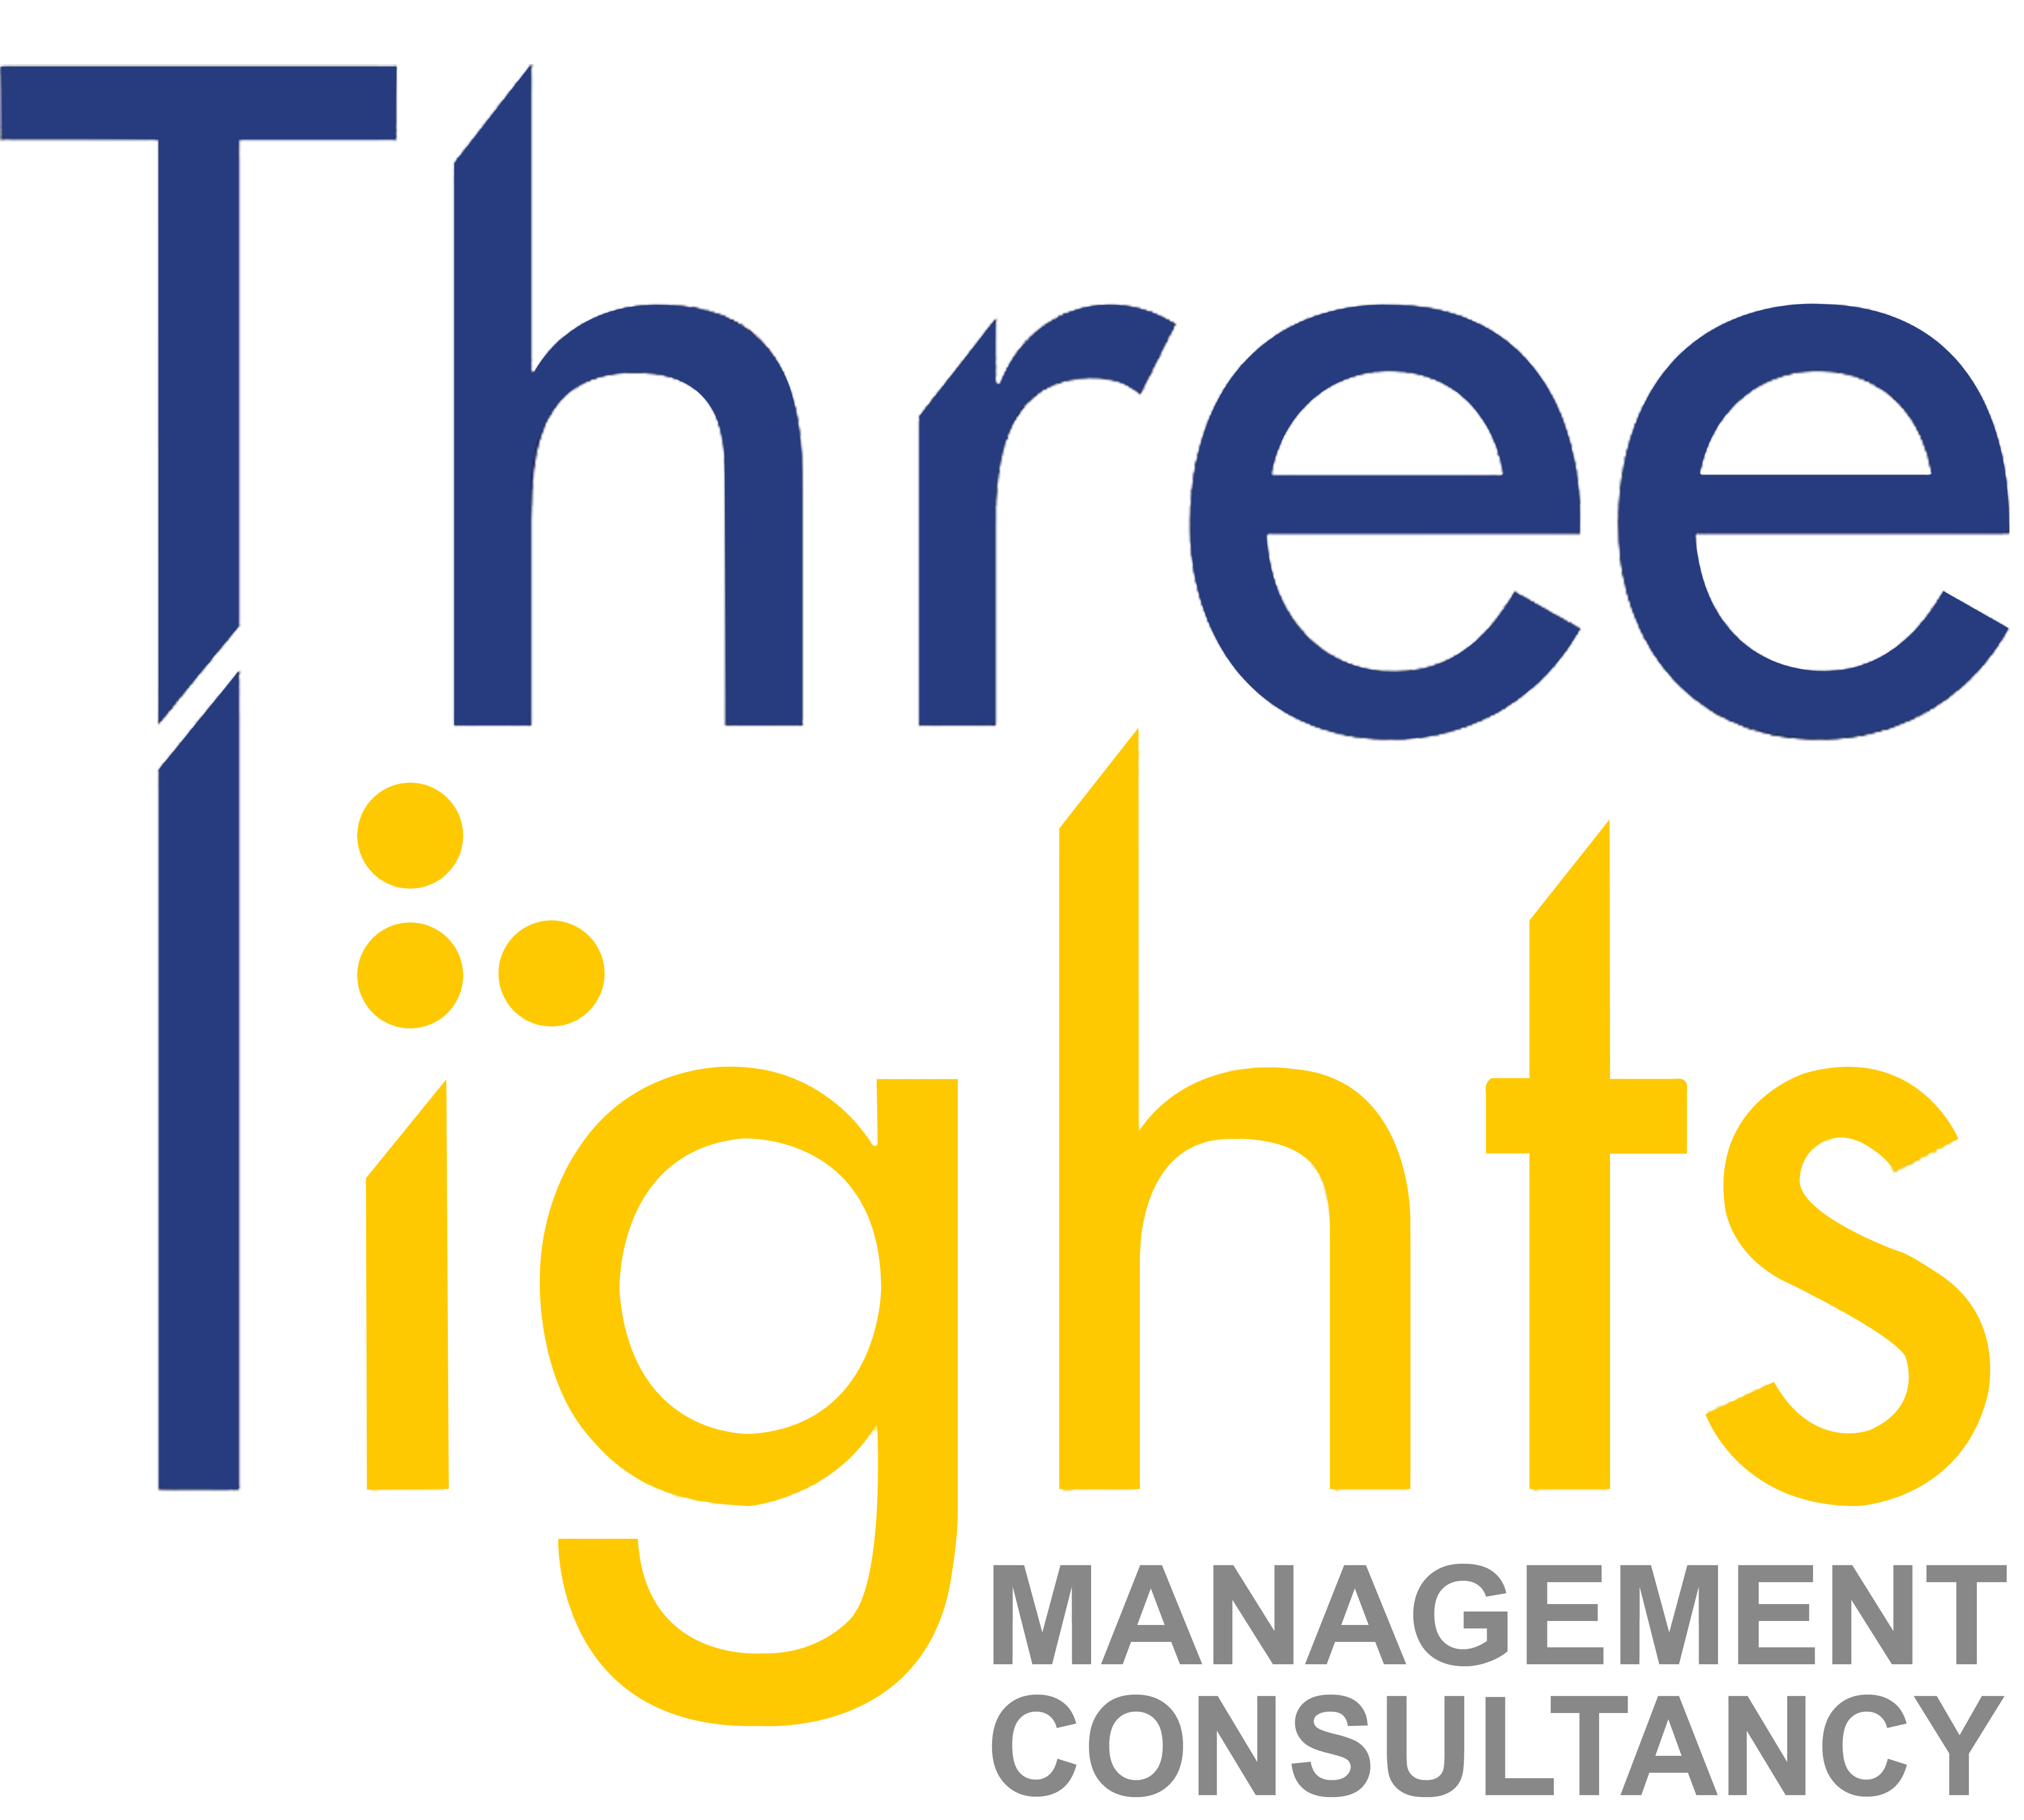 Three Lights Management and Consultancy Corporation